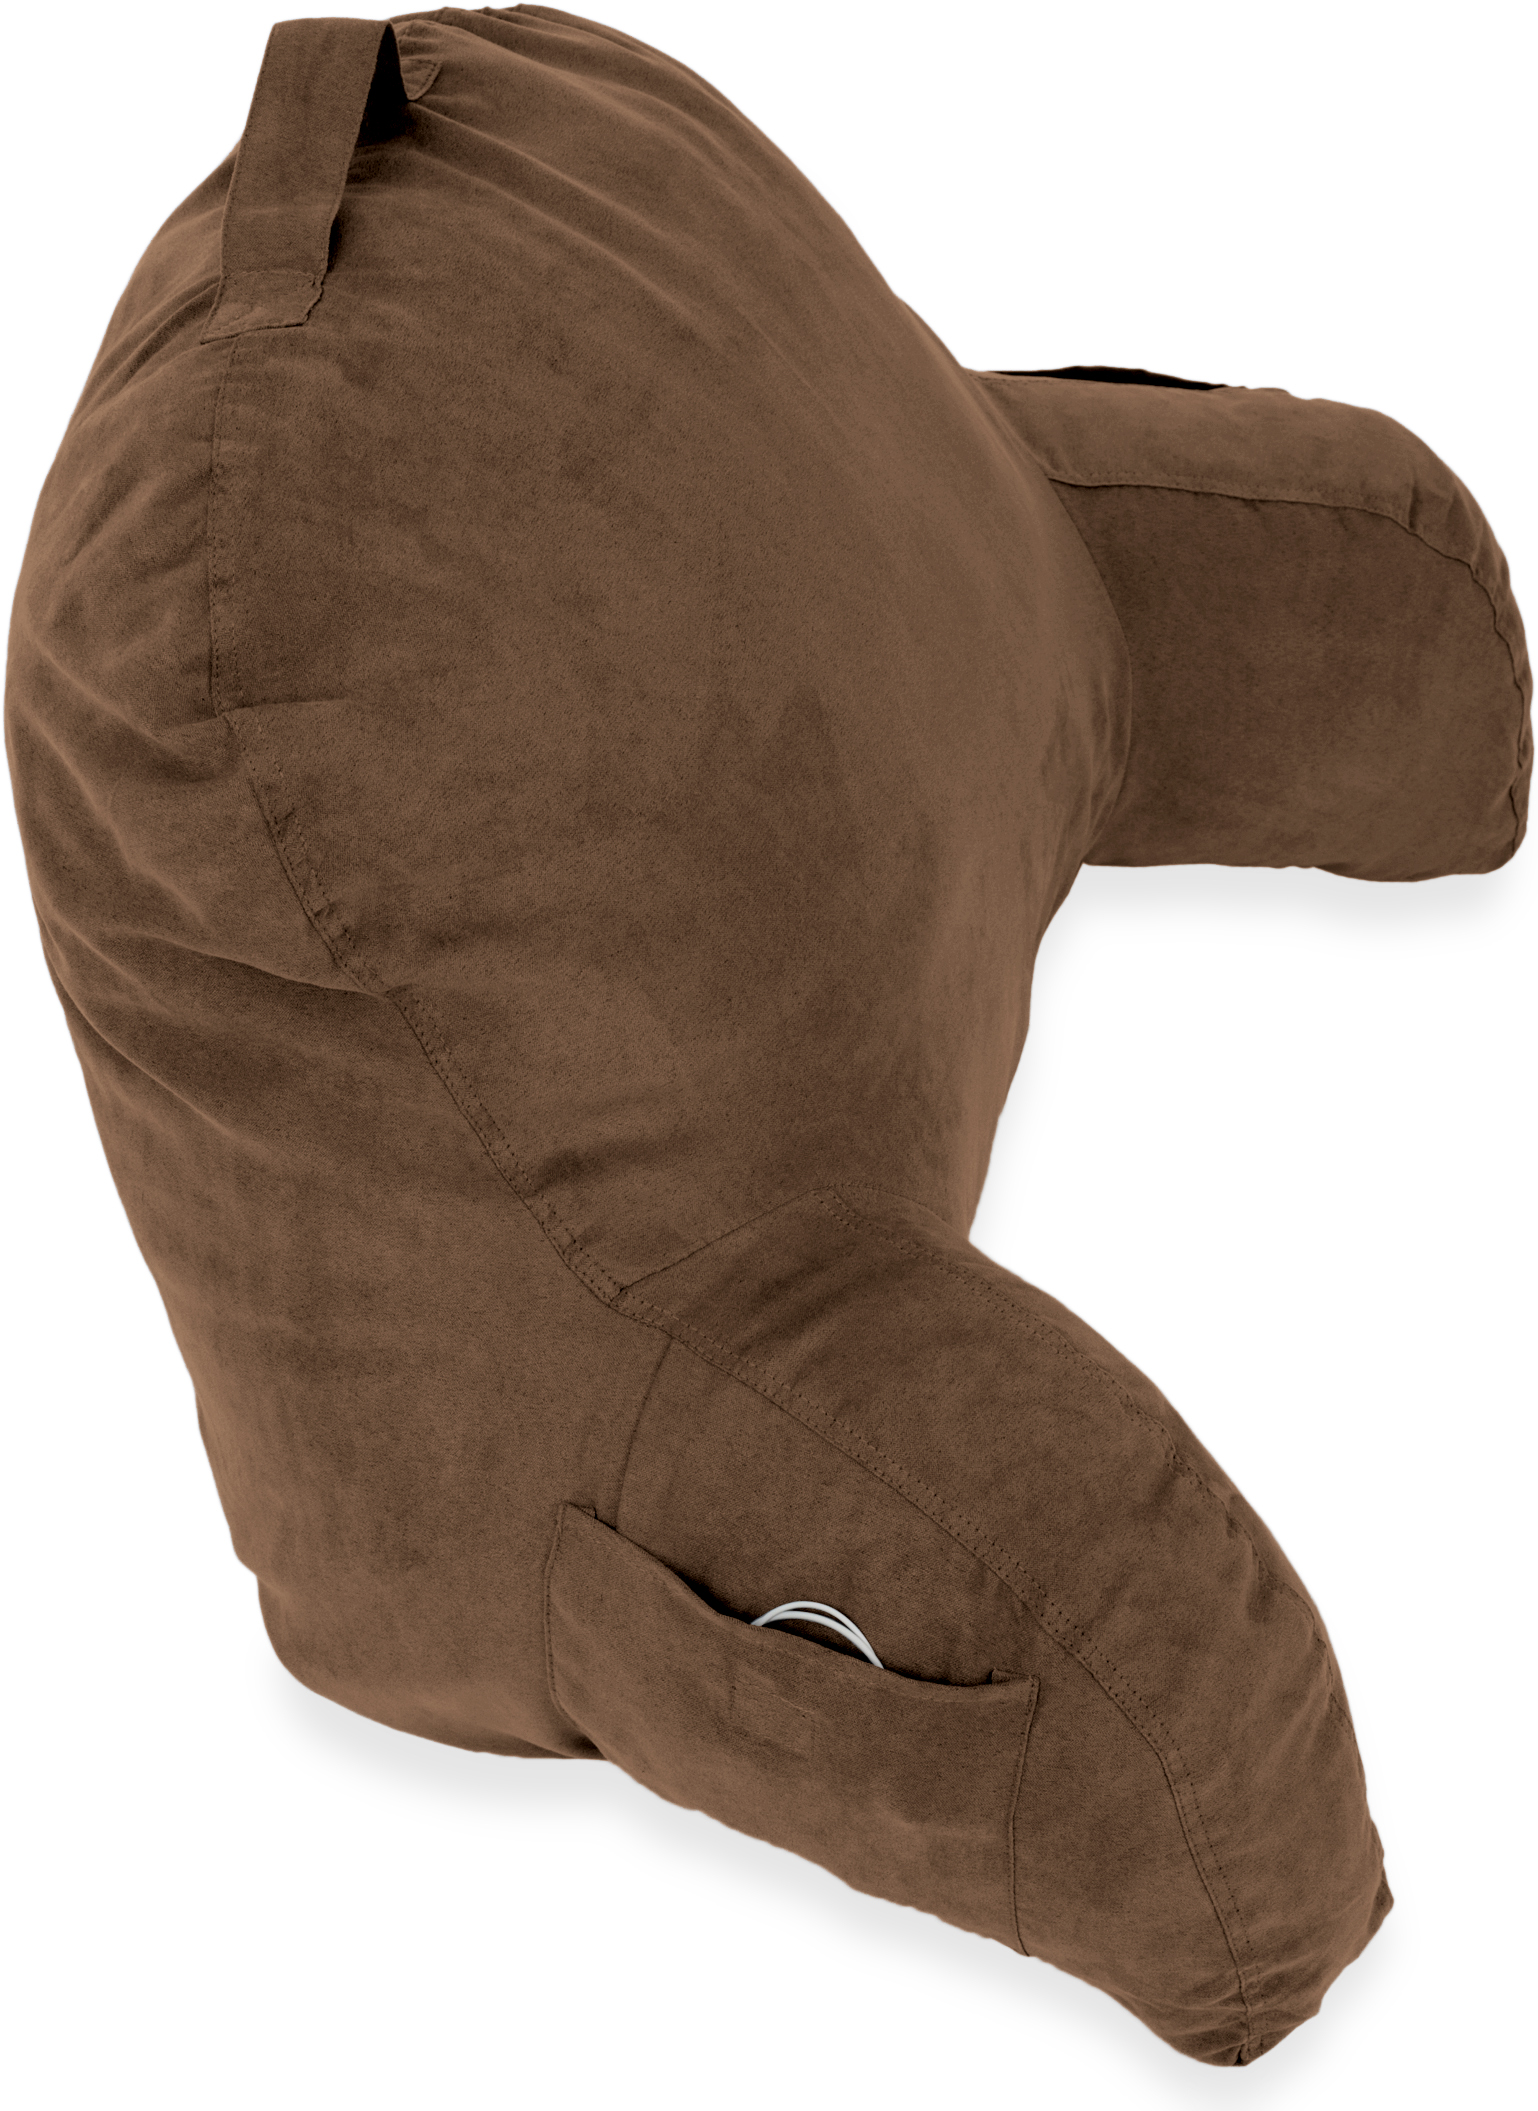 Microsuede-Bed-Rest-Reading-and-Bed-Rest-Lounger-Bed-Pillow thumbnail 7